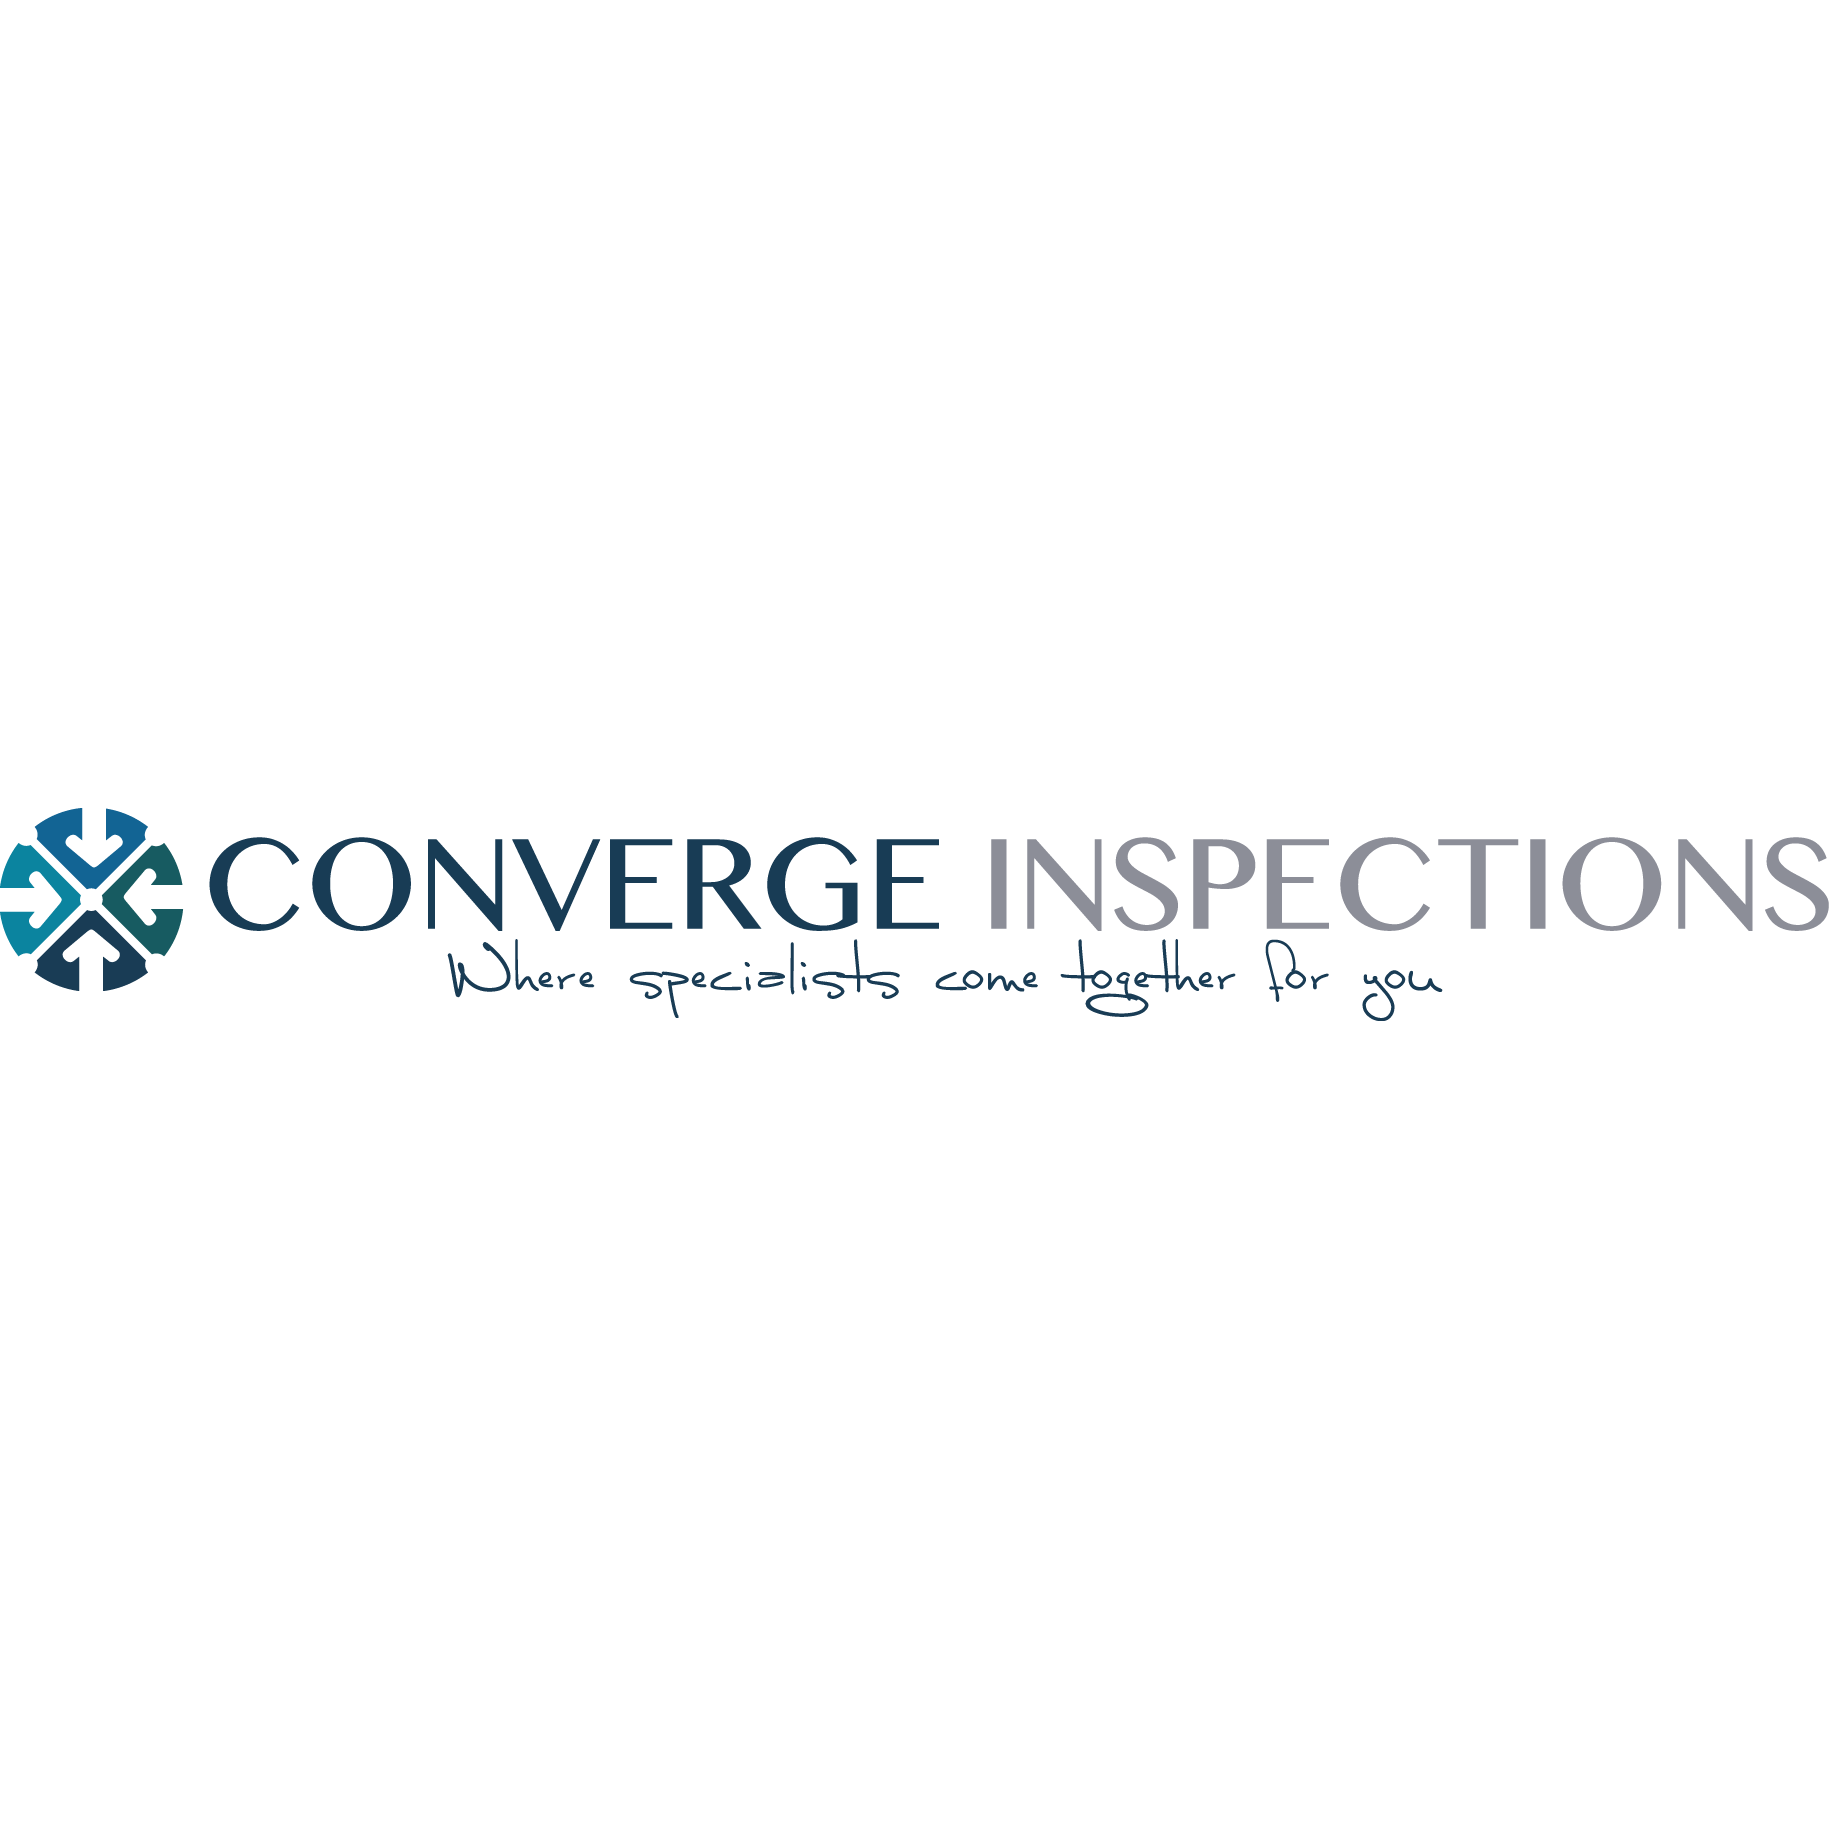 Converge Inspections